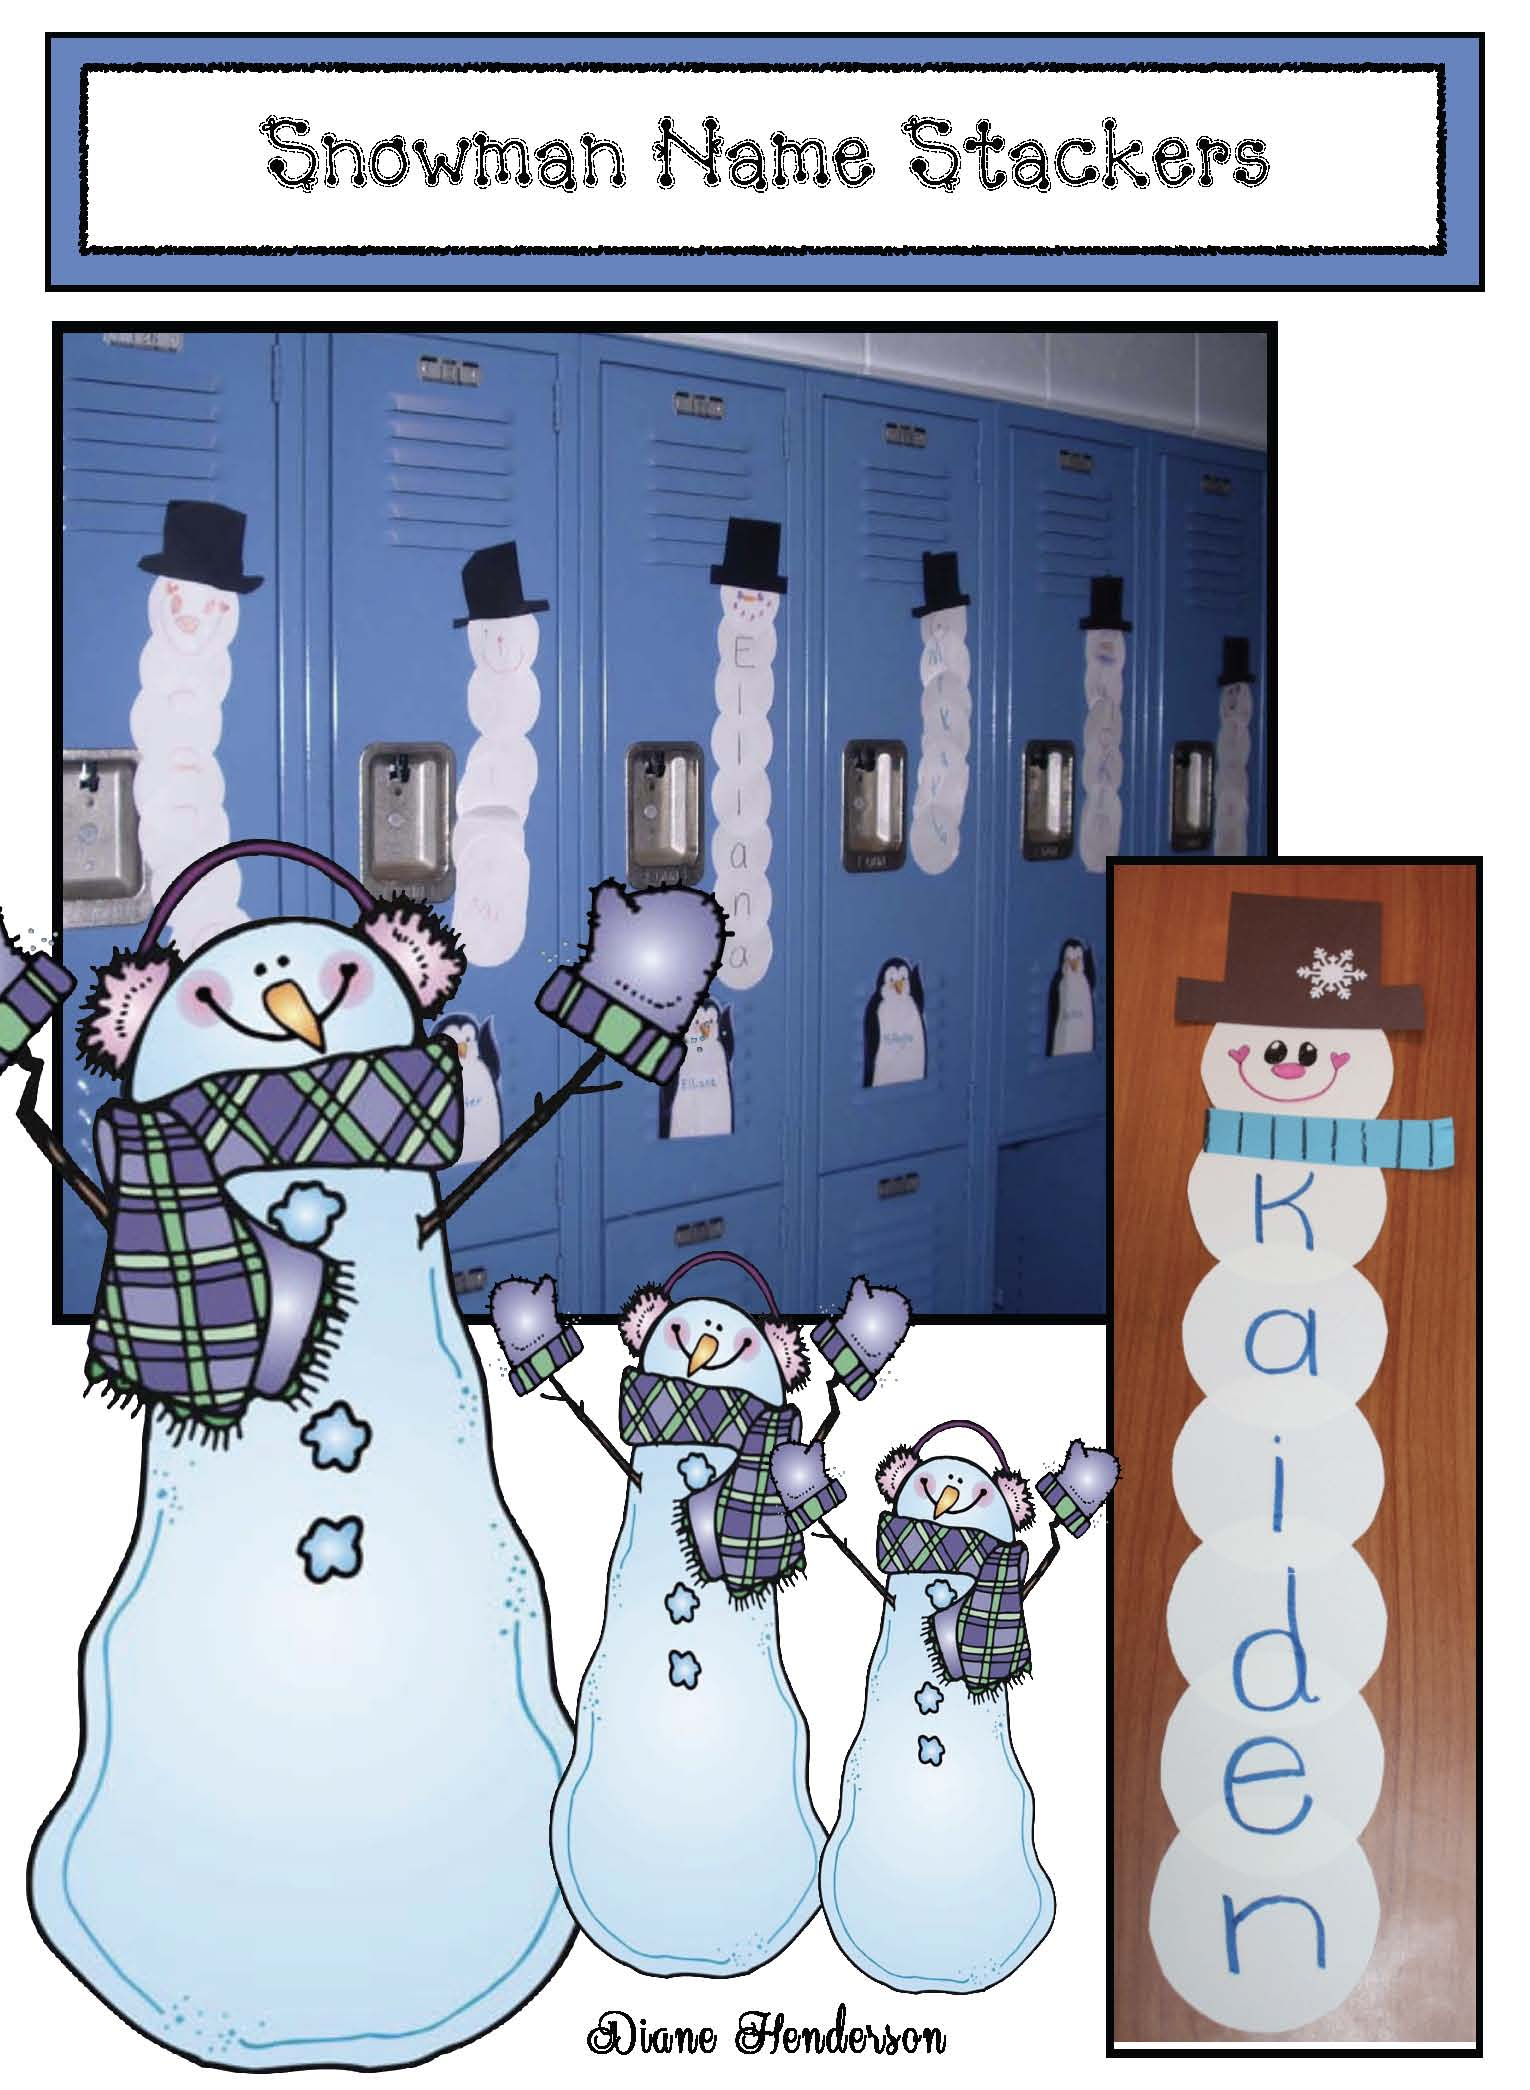 Cover Snowman Stackers